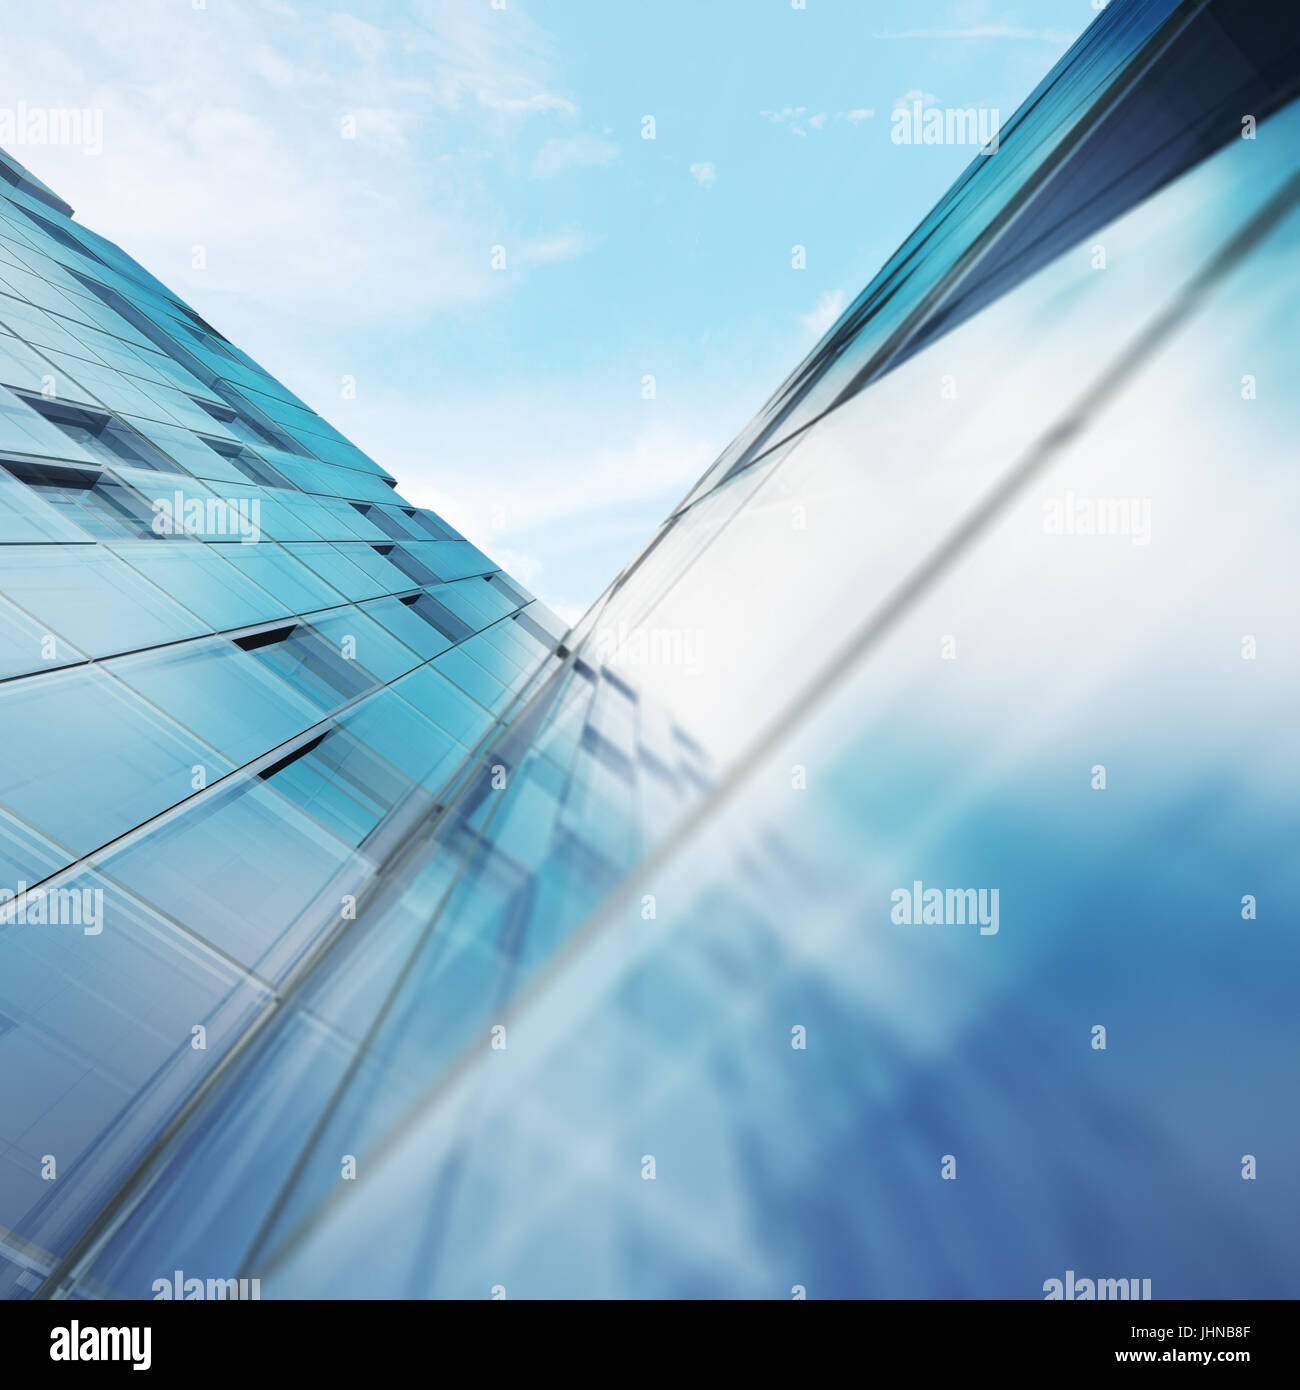 Transparent abstract building - Stock Image